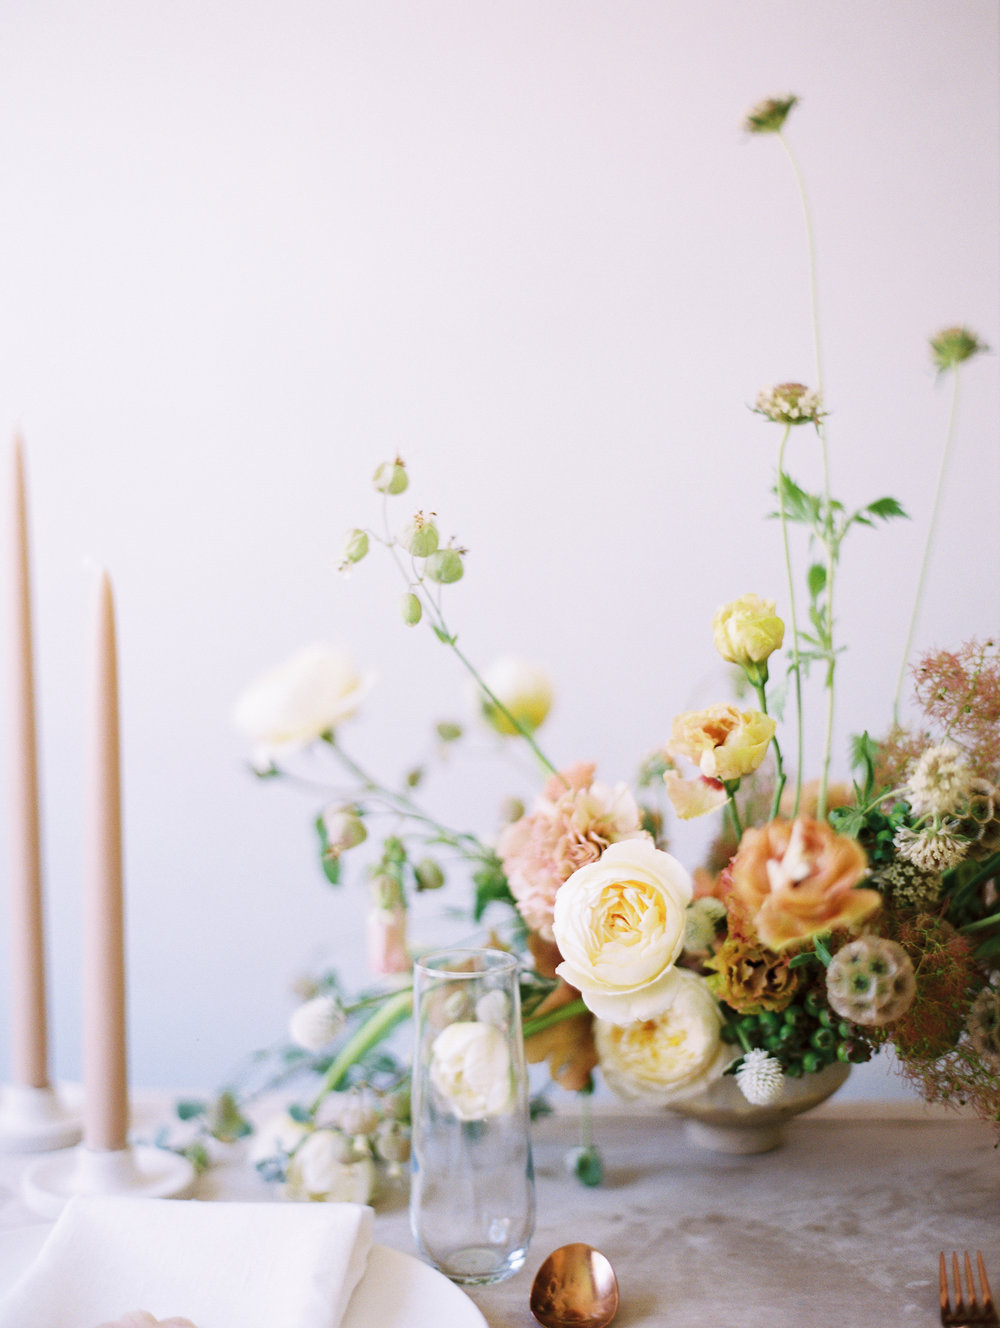 Tablescape28.jpg